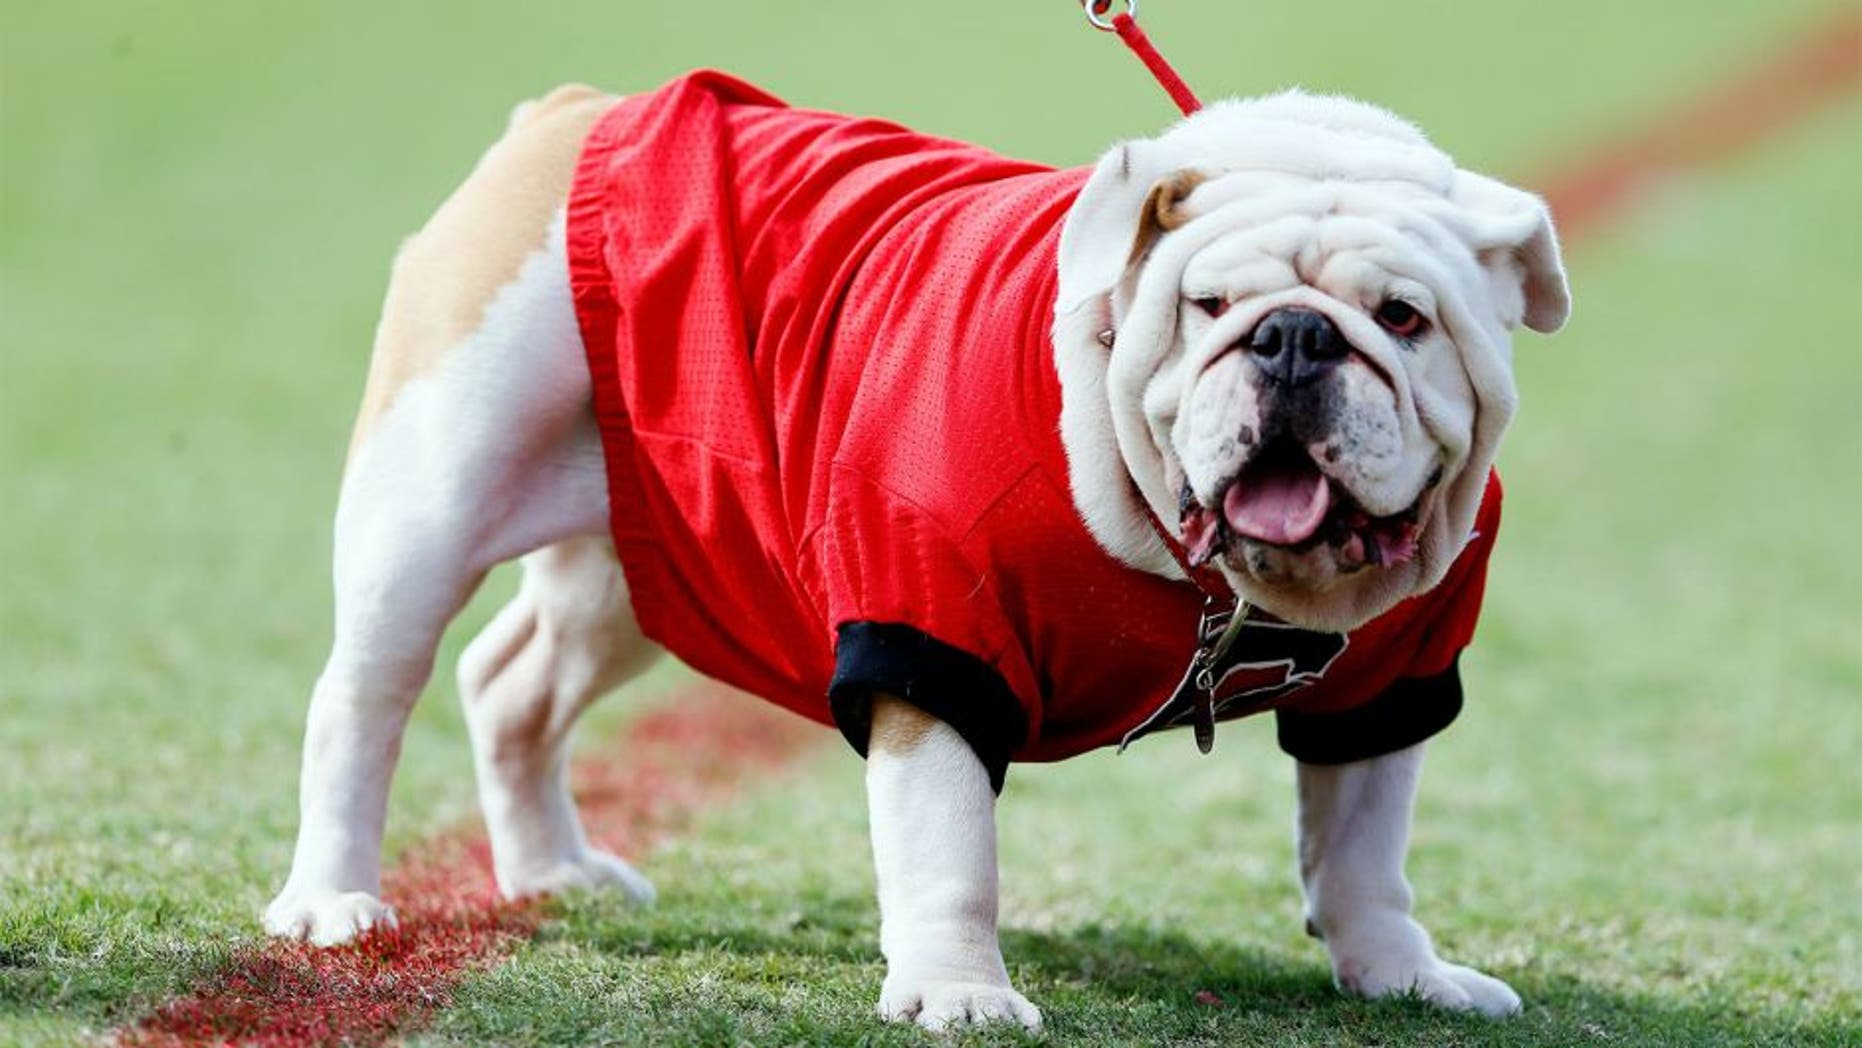 ATHENS, GA - OCTOBER 12: UGA IX, mascot of the Georgia Bulldogs, looks on during the game against the Missouri Tigers at Sanford Stadium on October 12, 2013 in Athens, Georgia. (Photo by Kevin C. Cox/Getty Images)